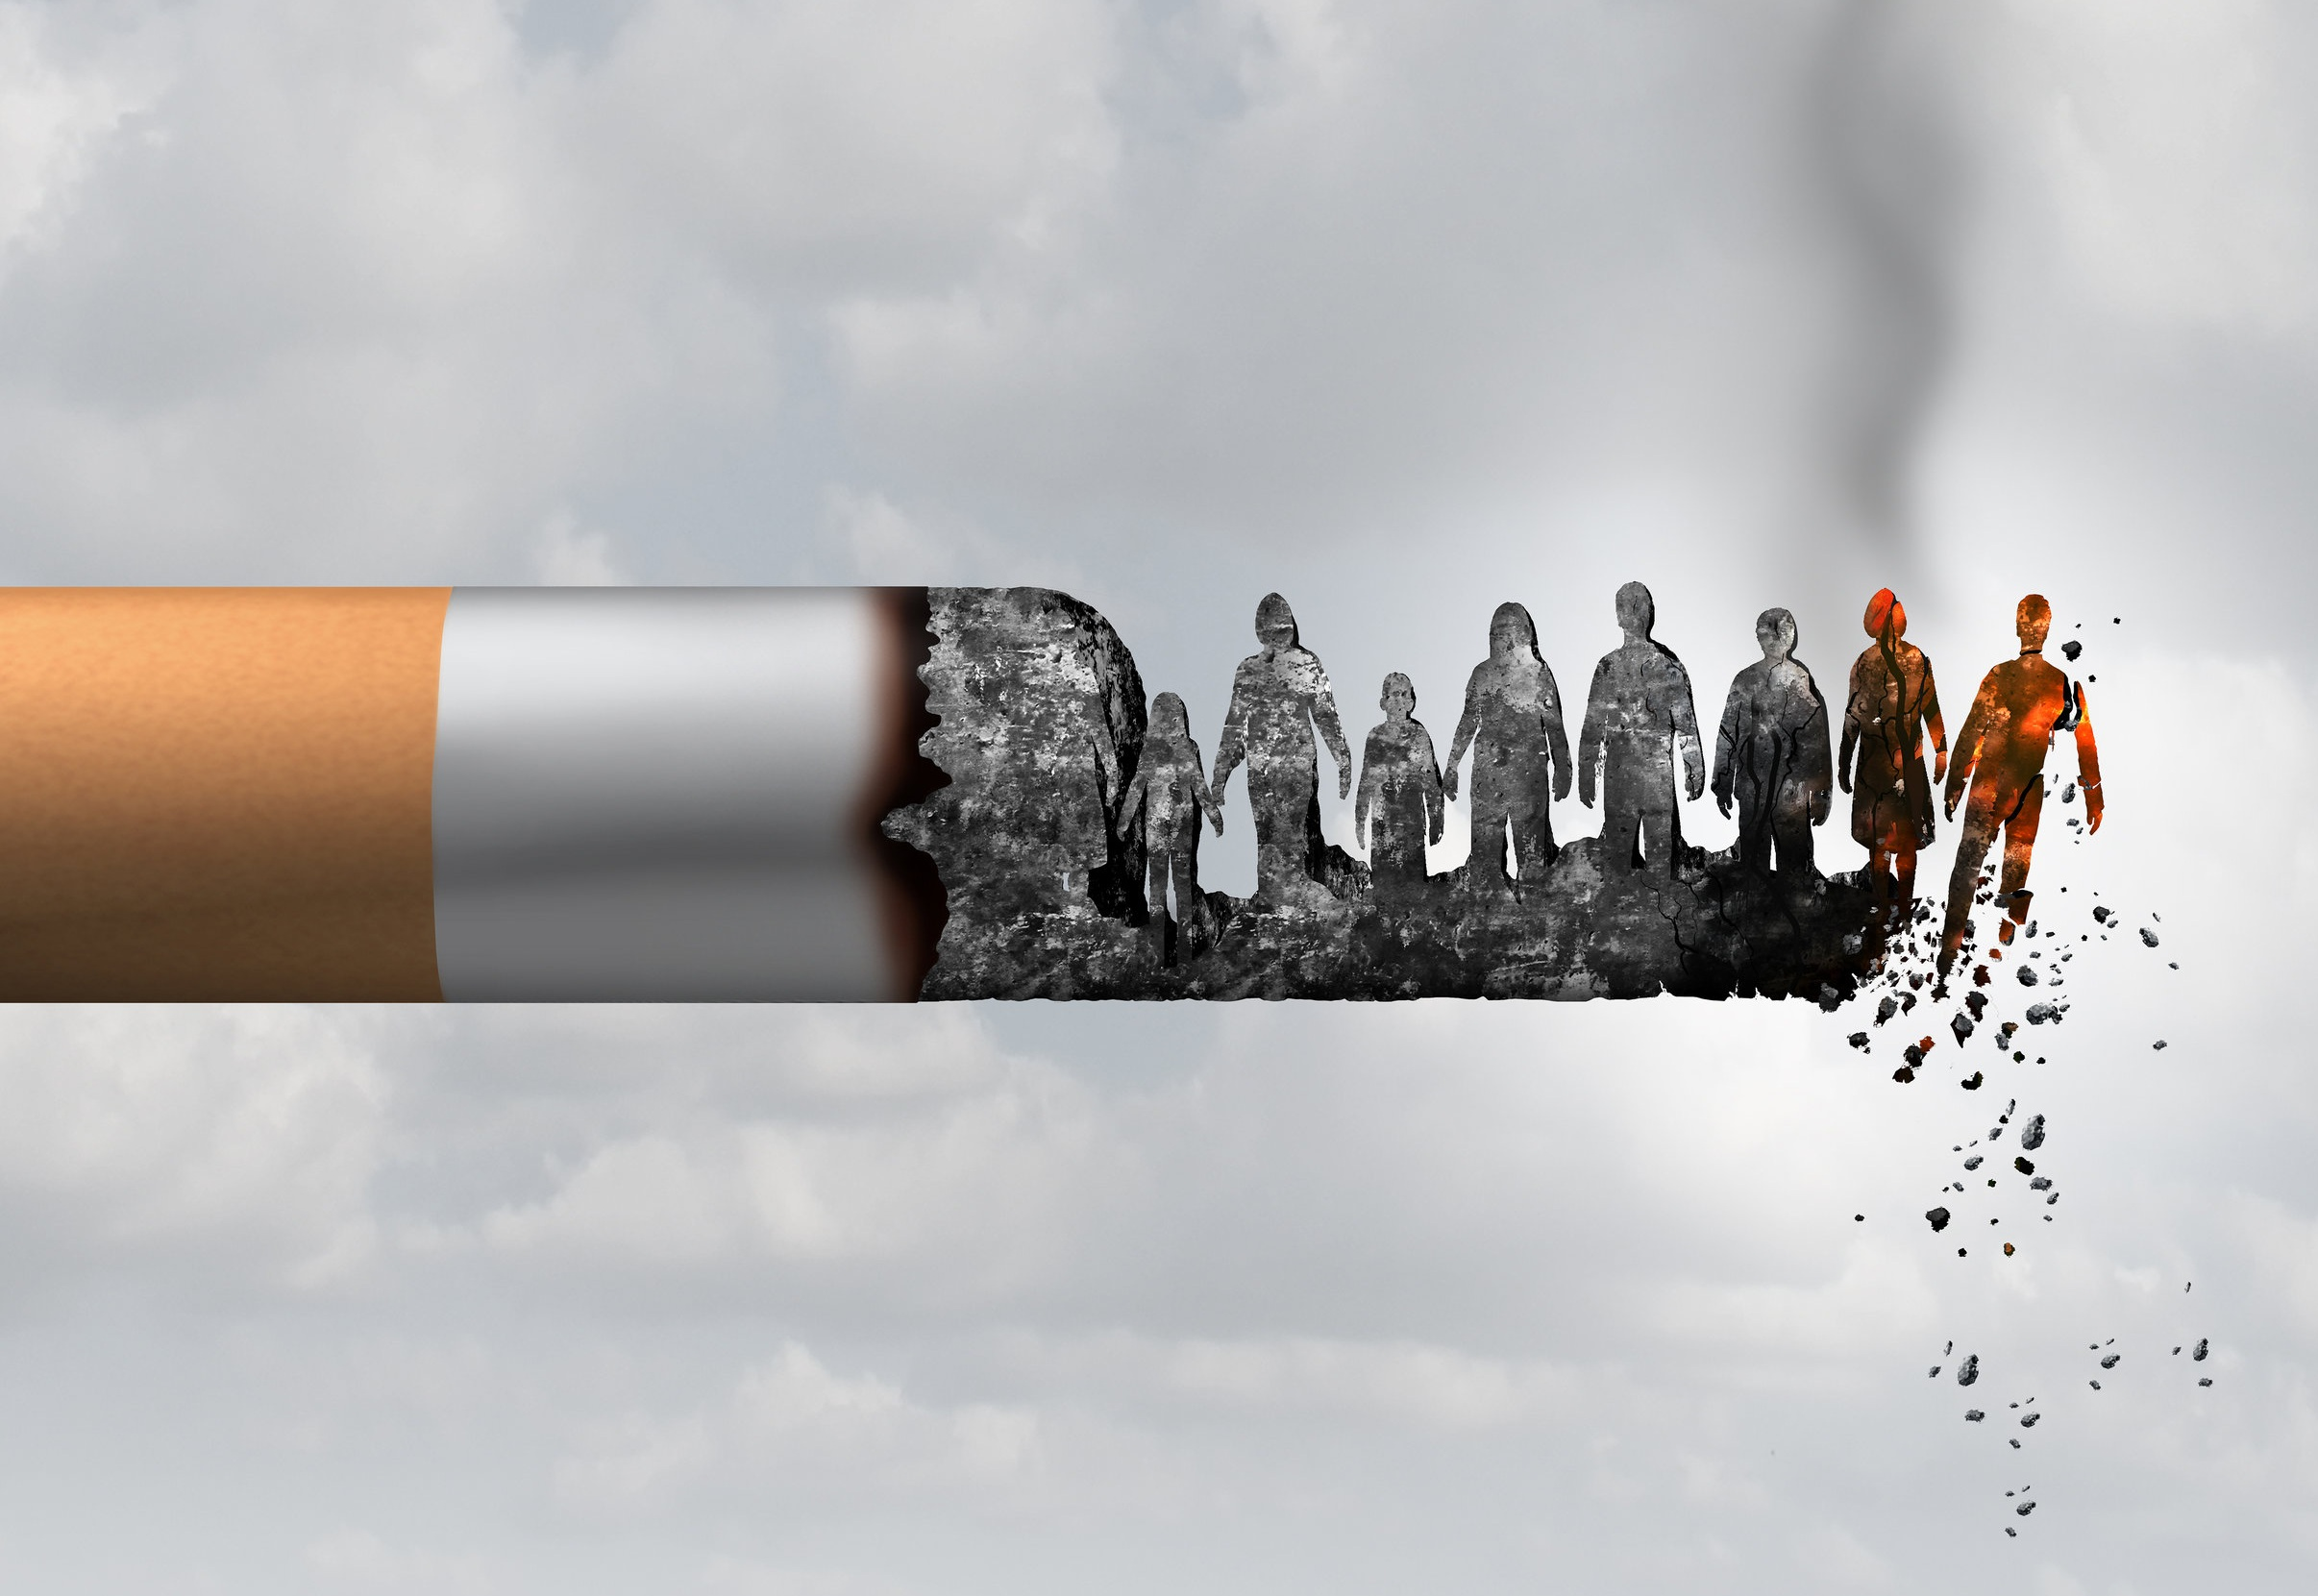 Why Quit Smoking? - Cigarettes contain arsenic, and the same toxic chemicals found in gasoline and dog poop. Tobacco smoke gives you pimples, yellow teeth and makes you smell. The QuitLine can help you put smoking out of your life for good.